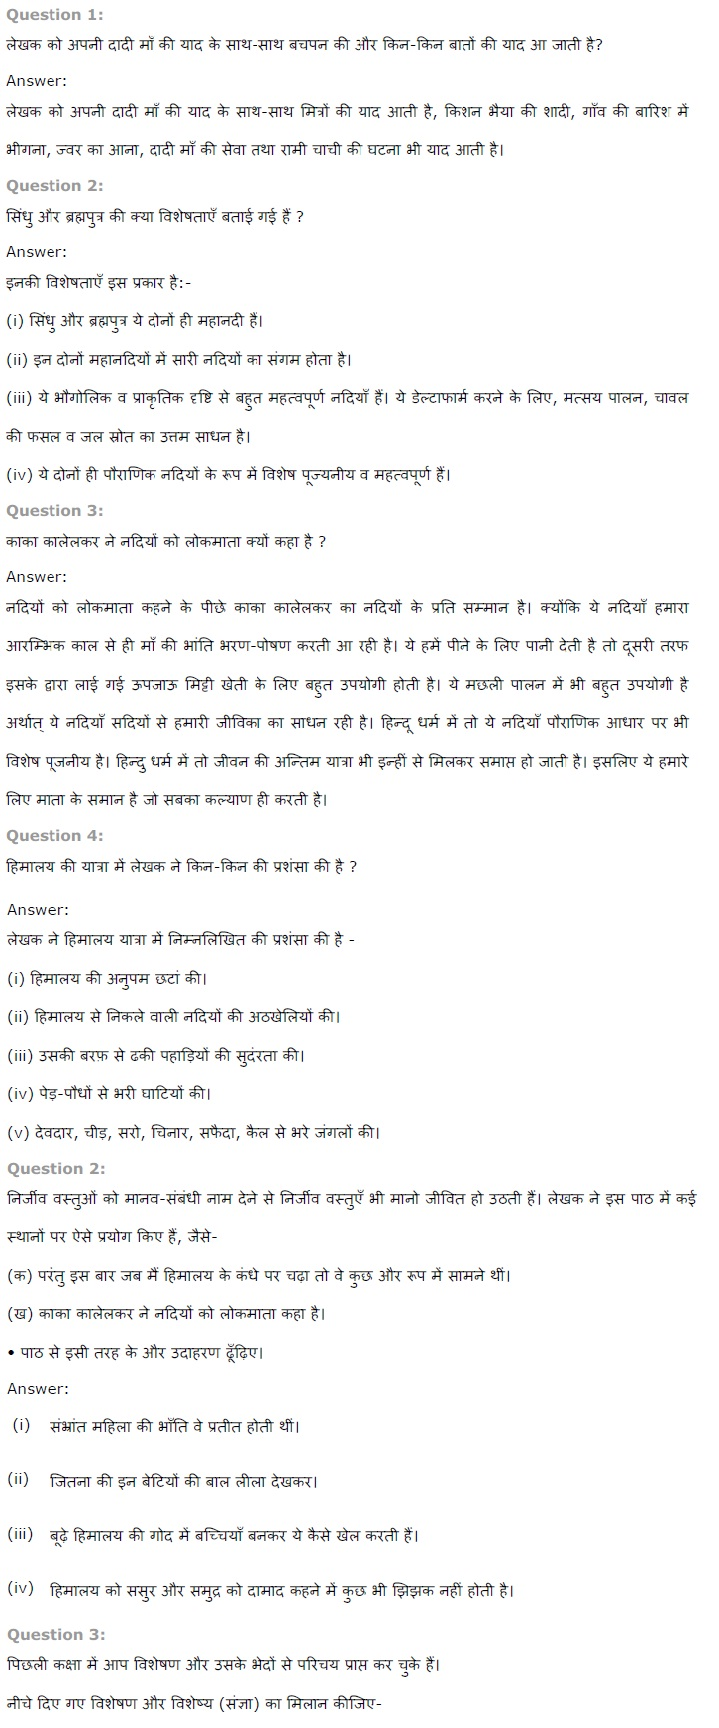 NCERT Solutions for Class 7 Hindi Chapter 3 हिमालय की बेटियां PDF Download